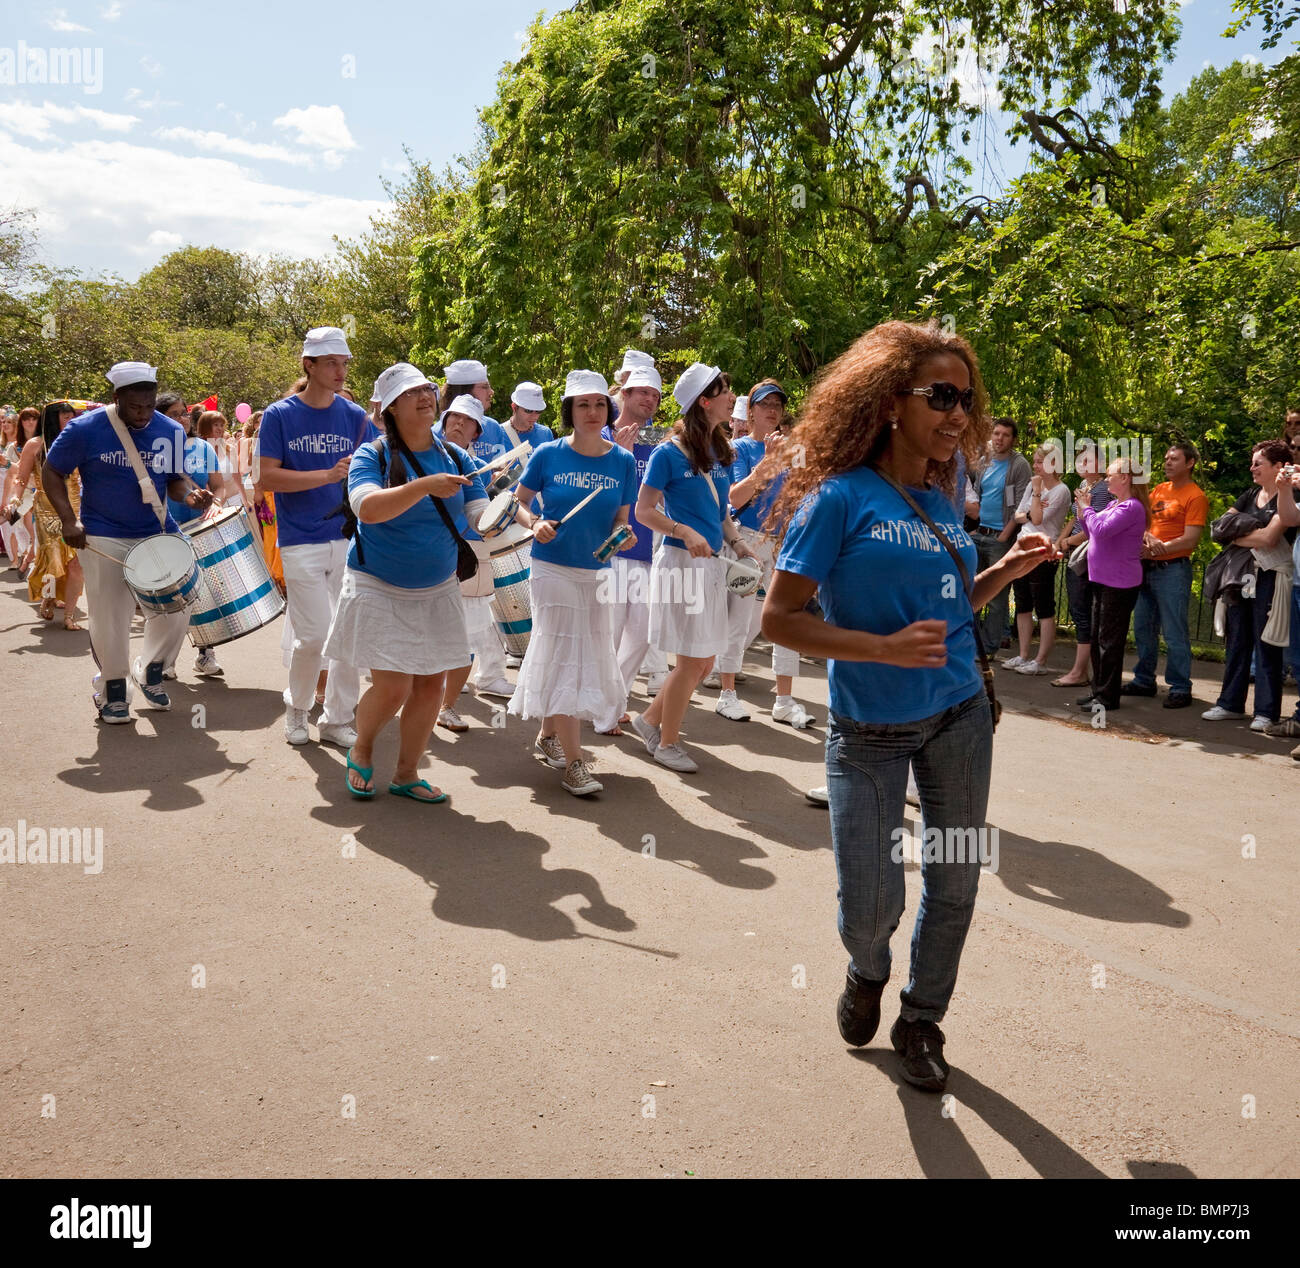 London-based samba band Rhythms of the City parade in Kelvingrove Park as part of Glasgow's West End Festival - Stock Image